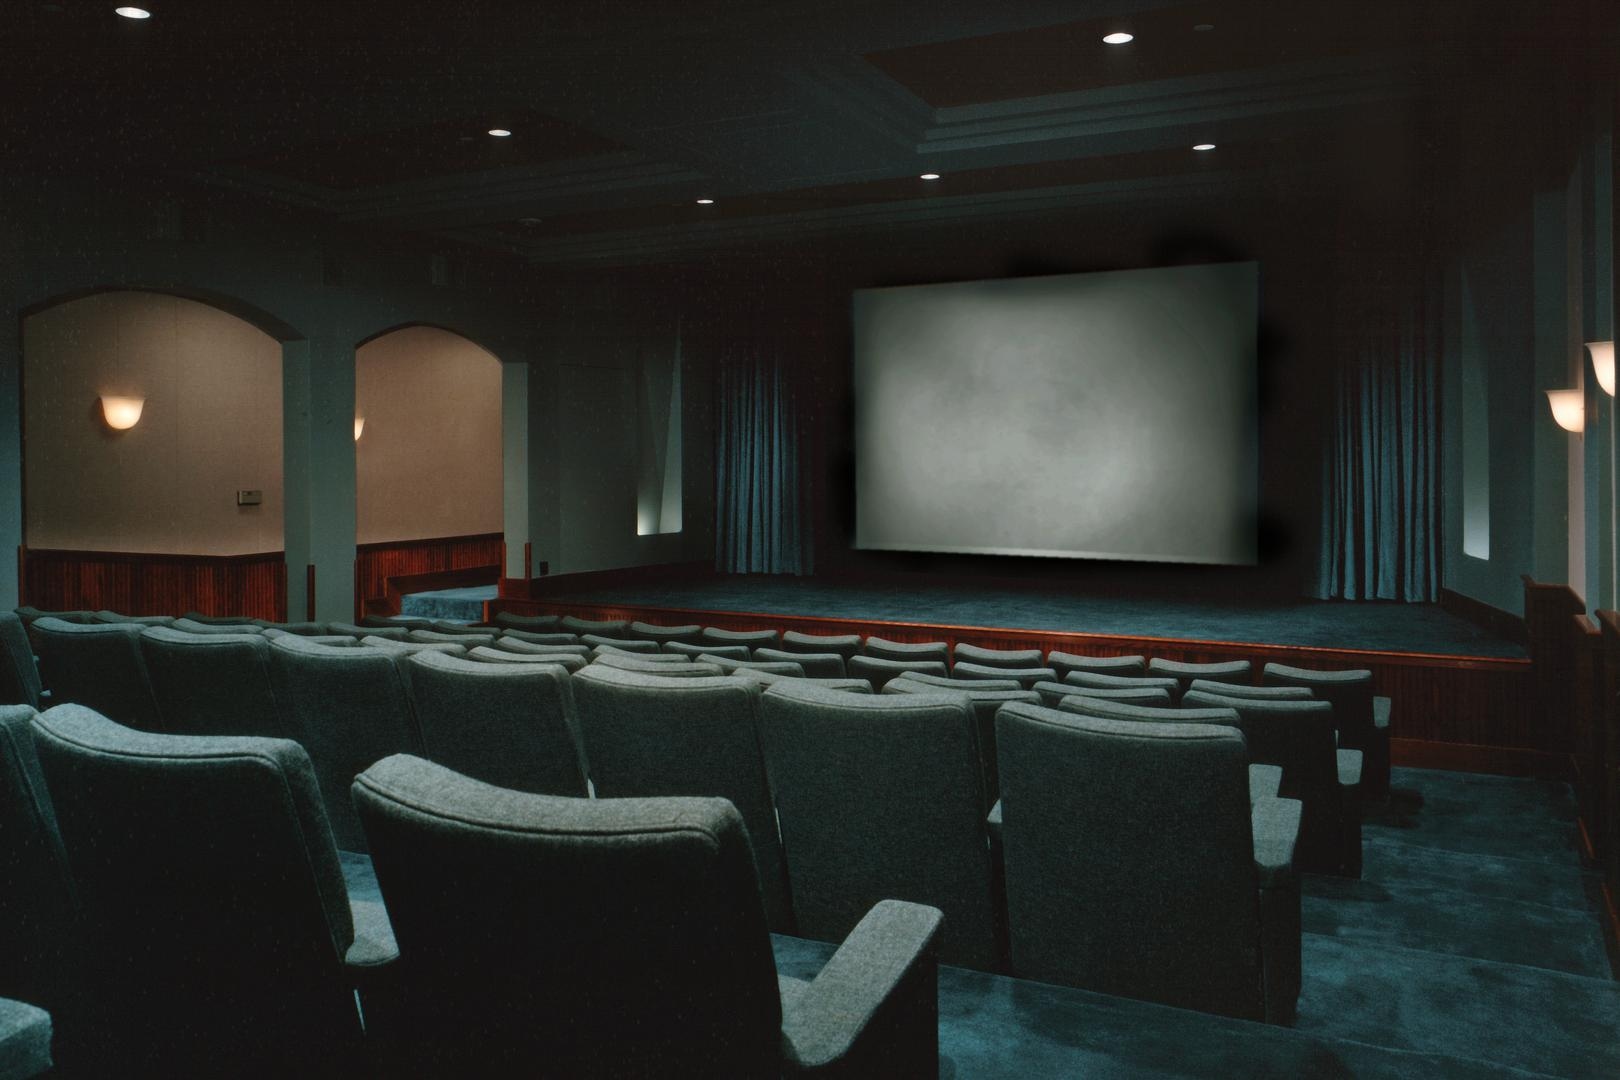 space at Tribeca Screening Room